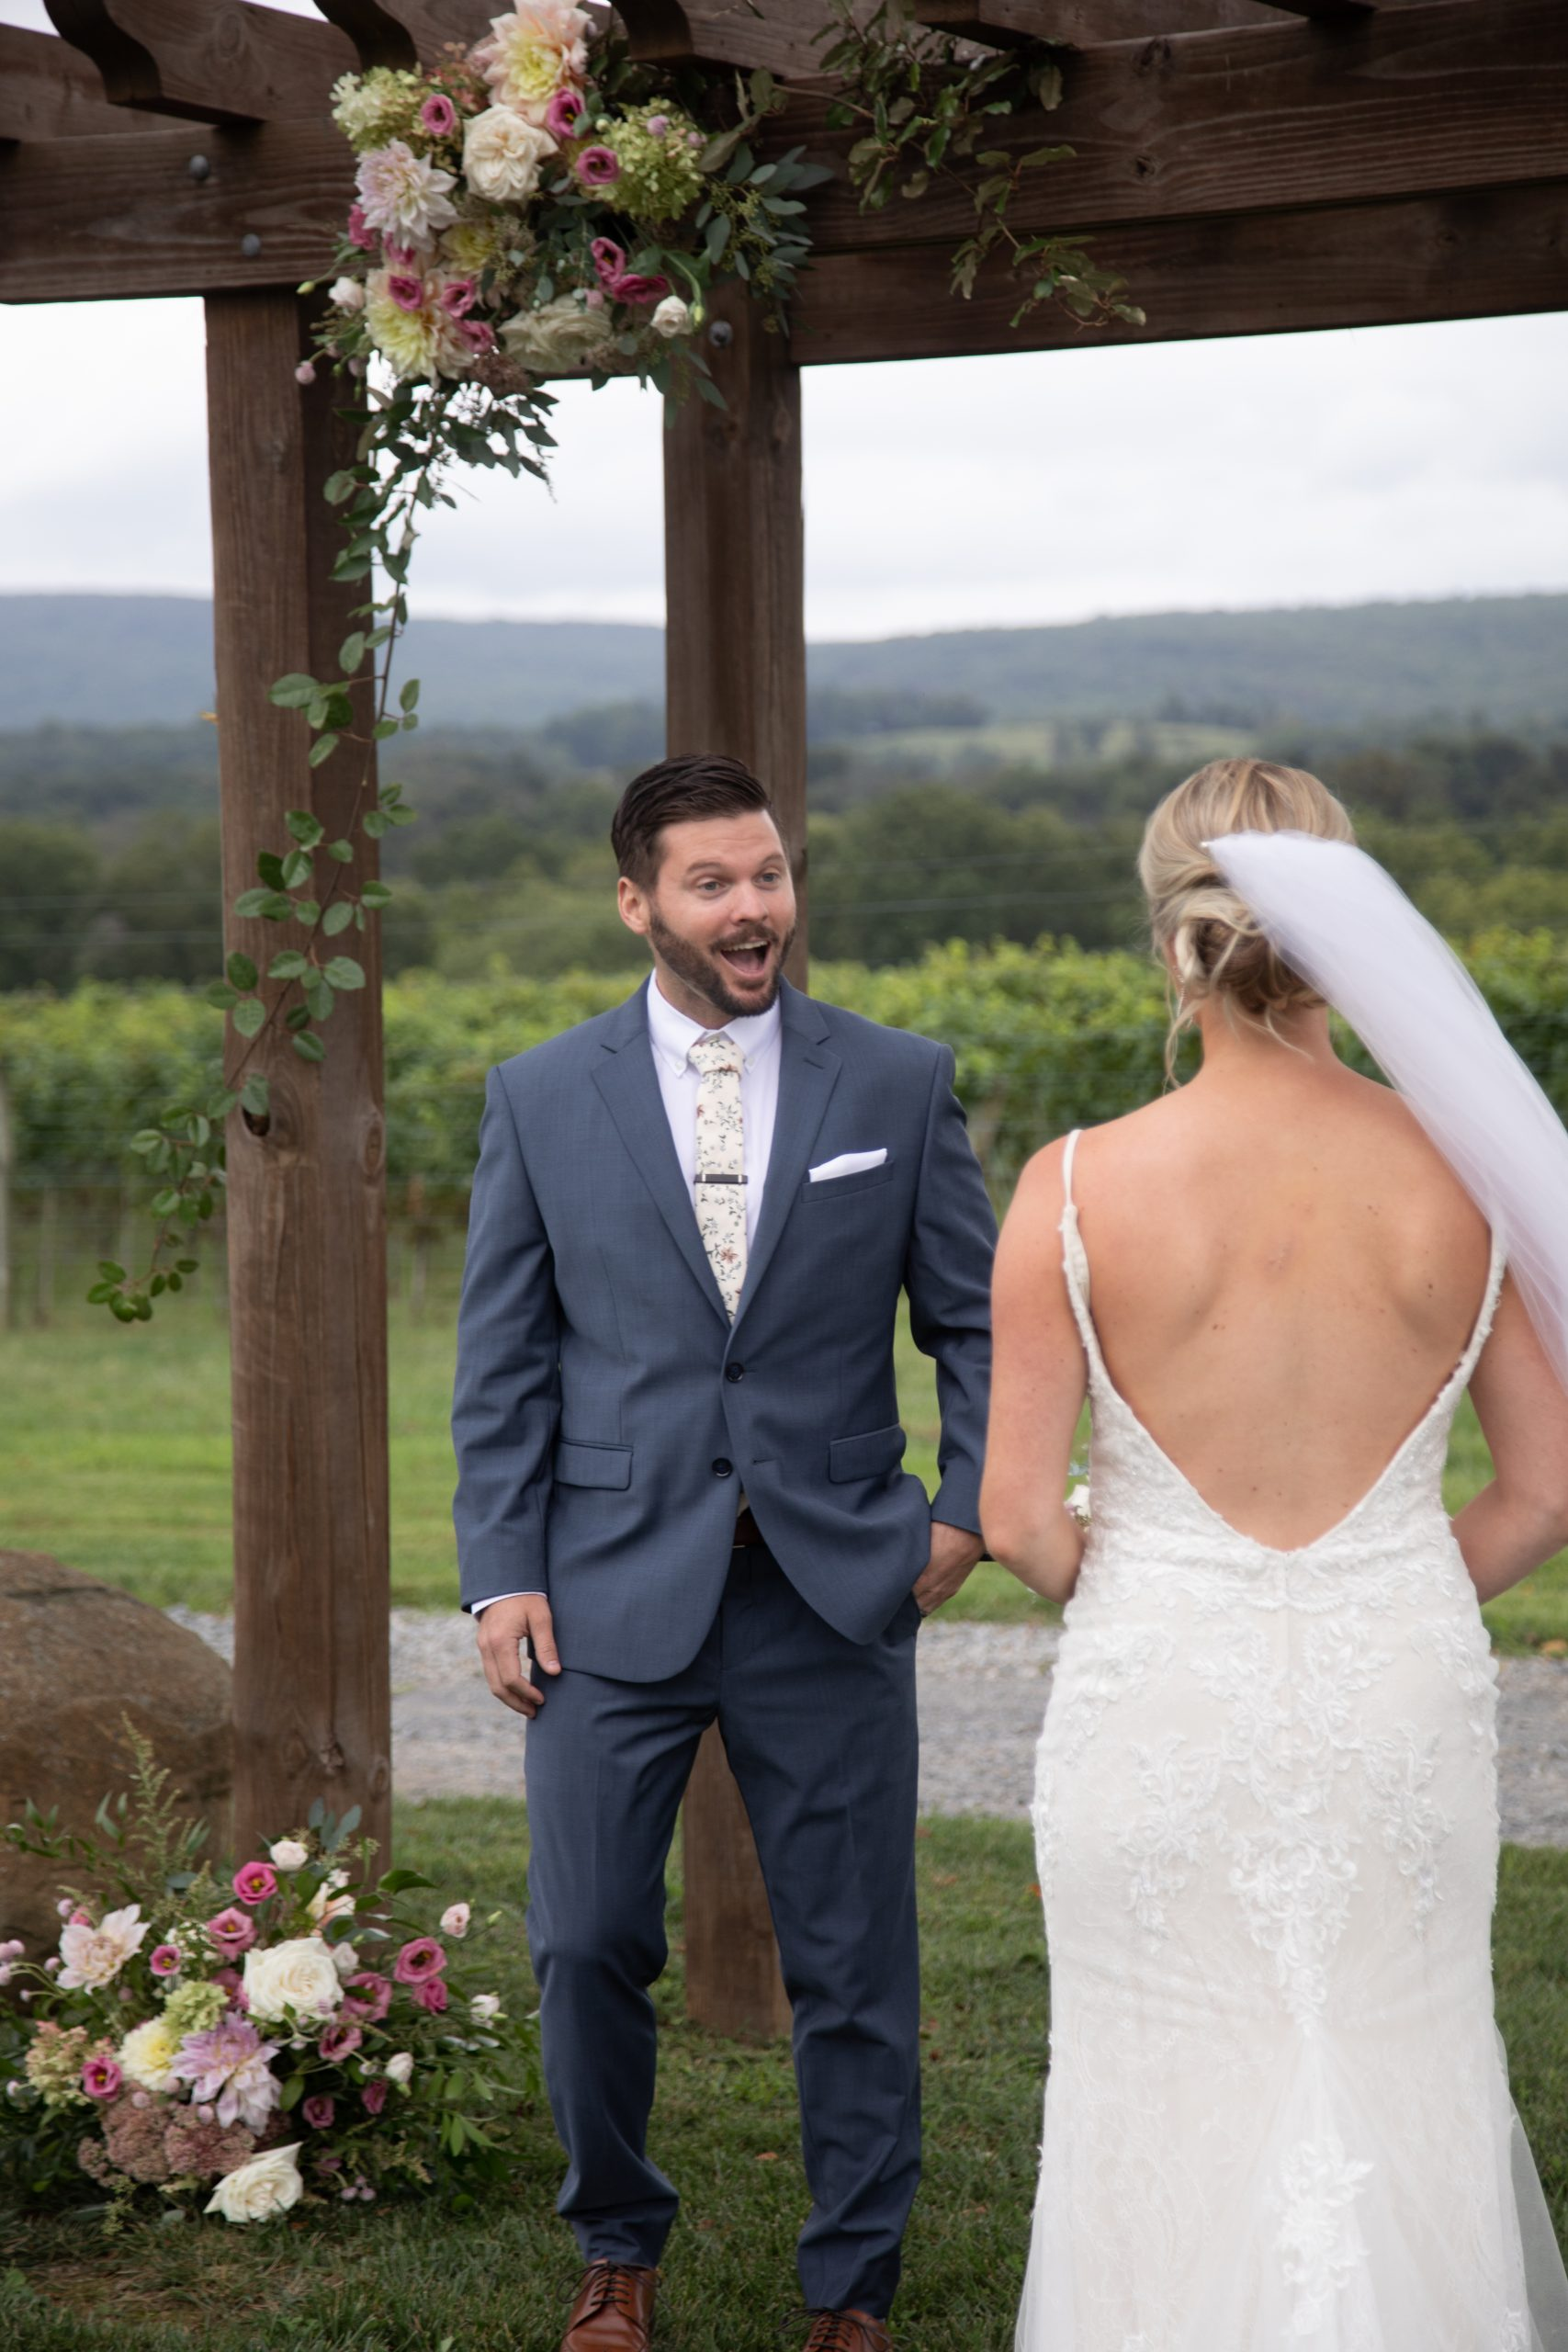 Kalero Vineyard wedding first look photographs, Stephanie Leigh Photography & Design